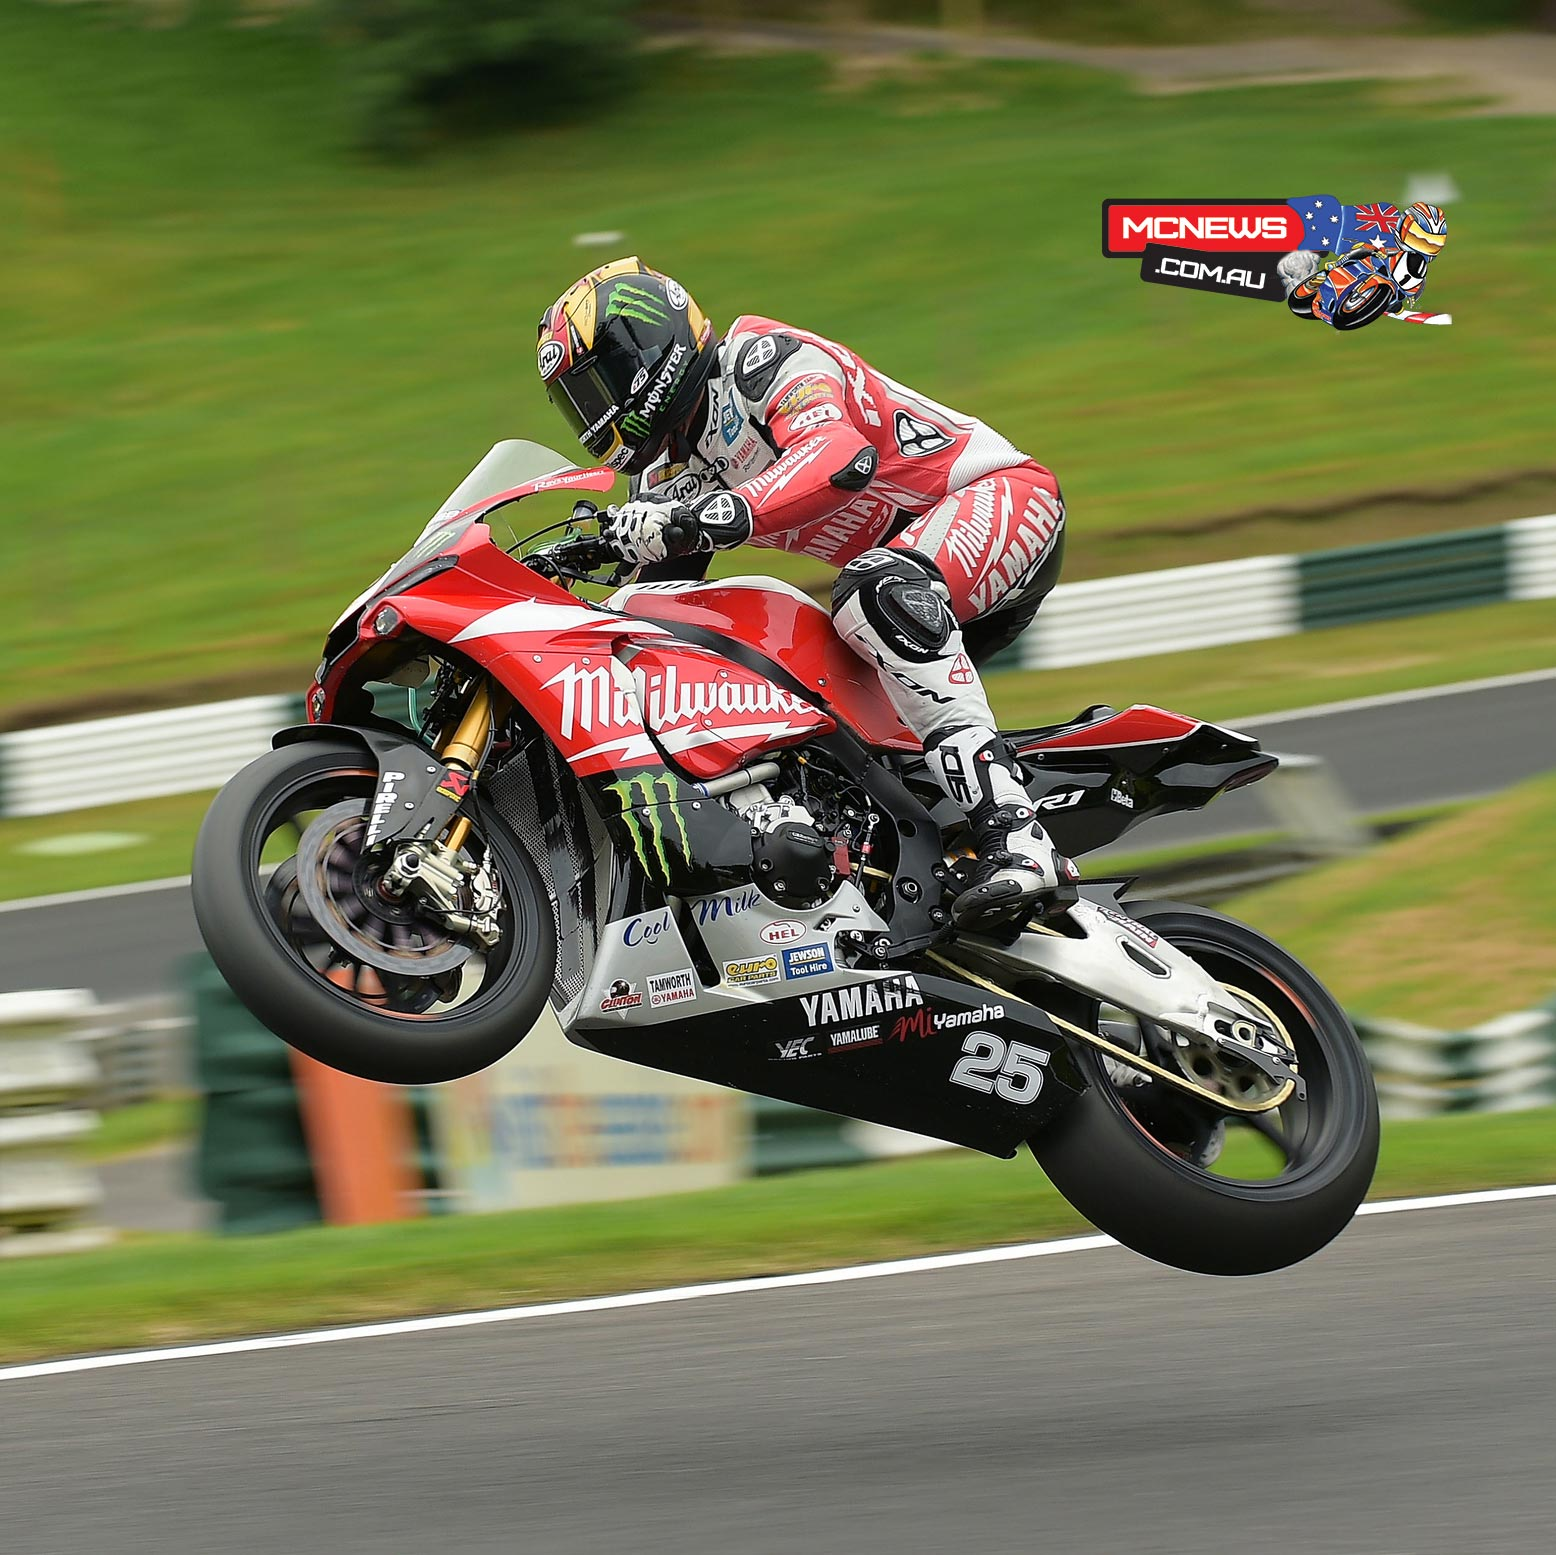 Josh Brookes at Cadwell Park 2015 Test